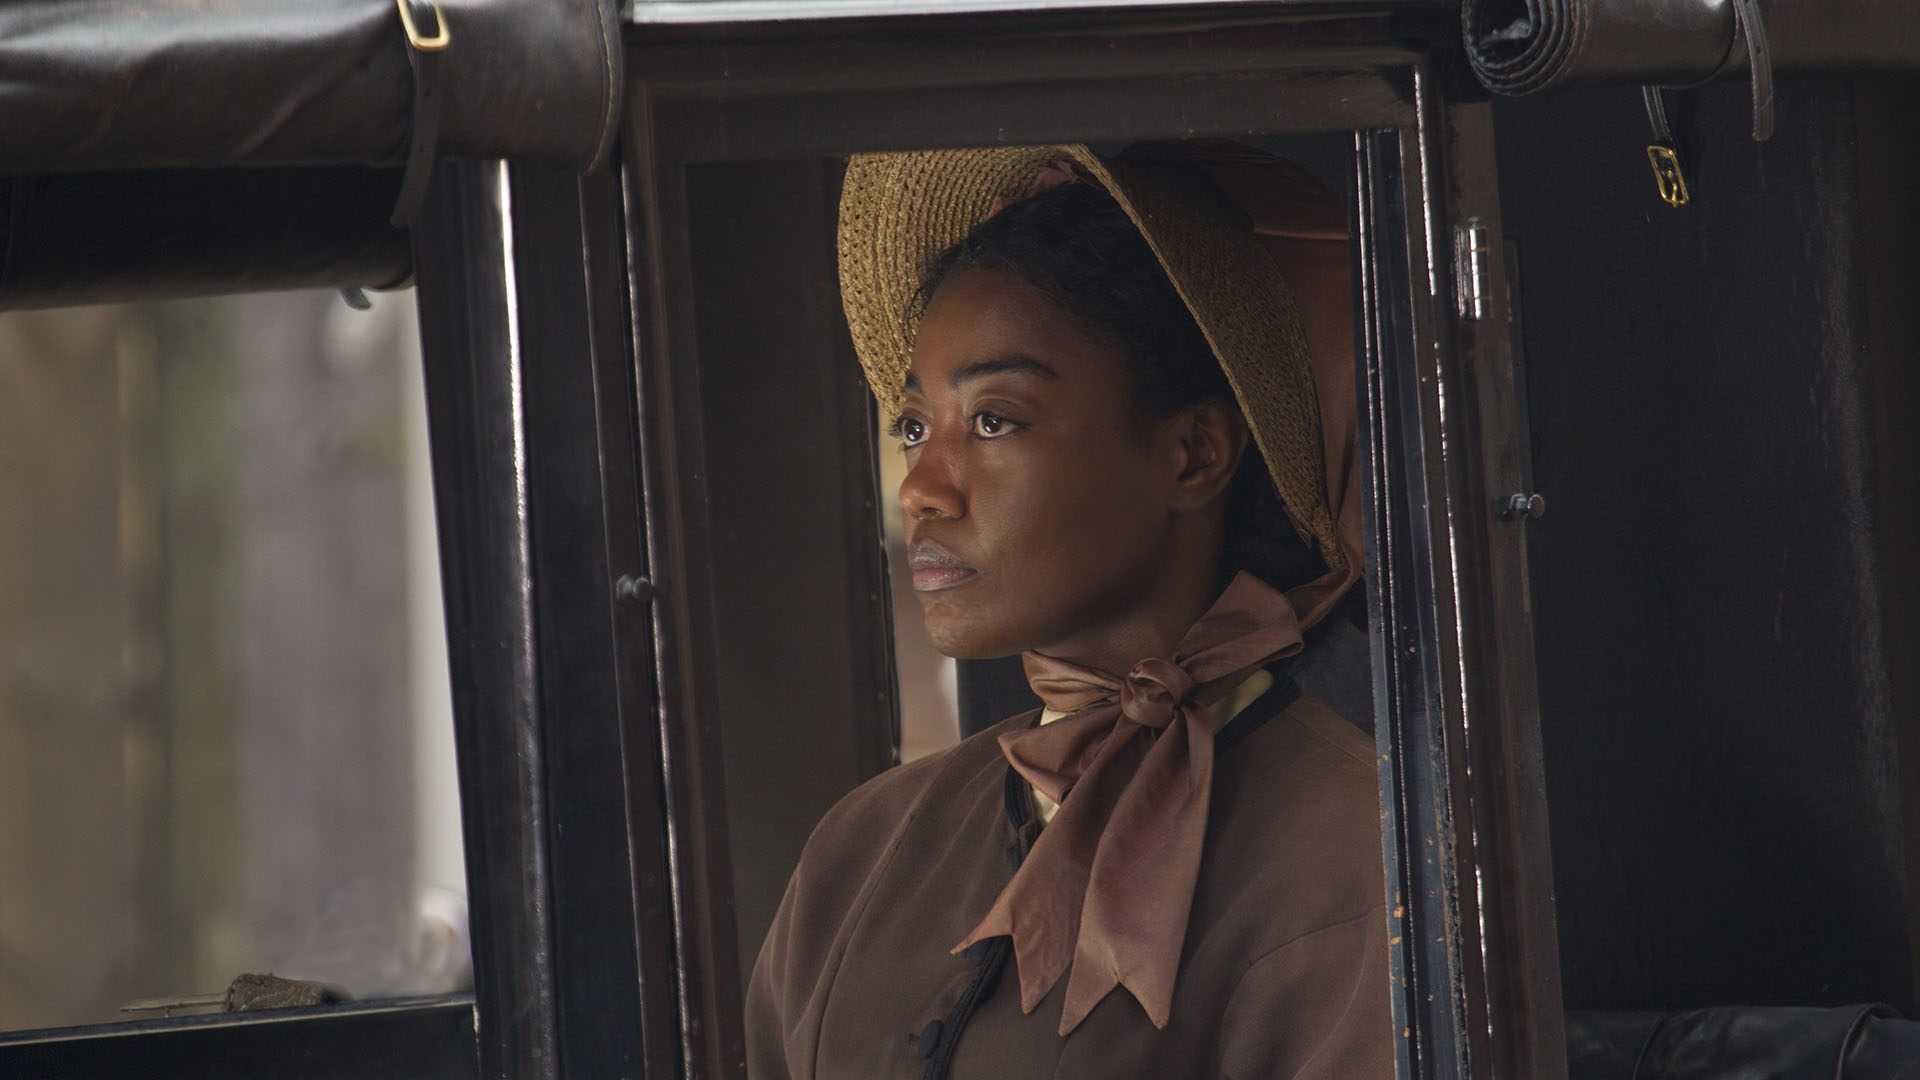 Meet the Cast and Characters of Mercy Street